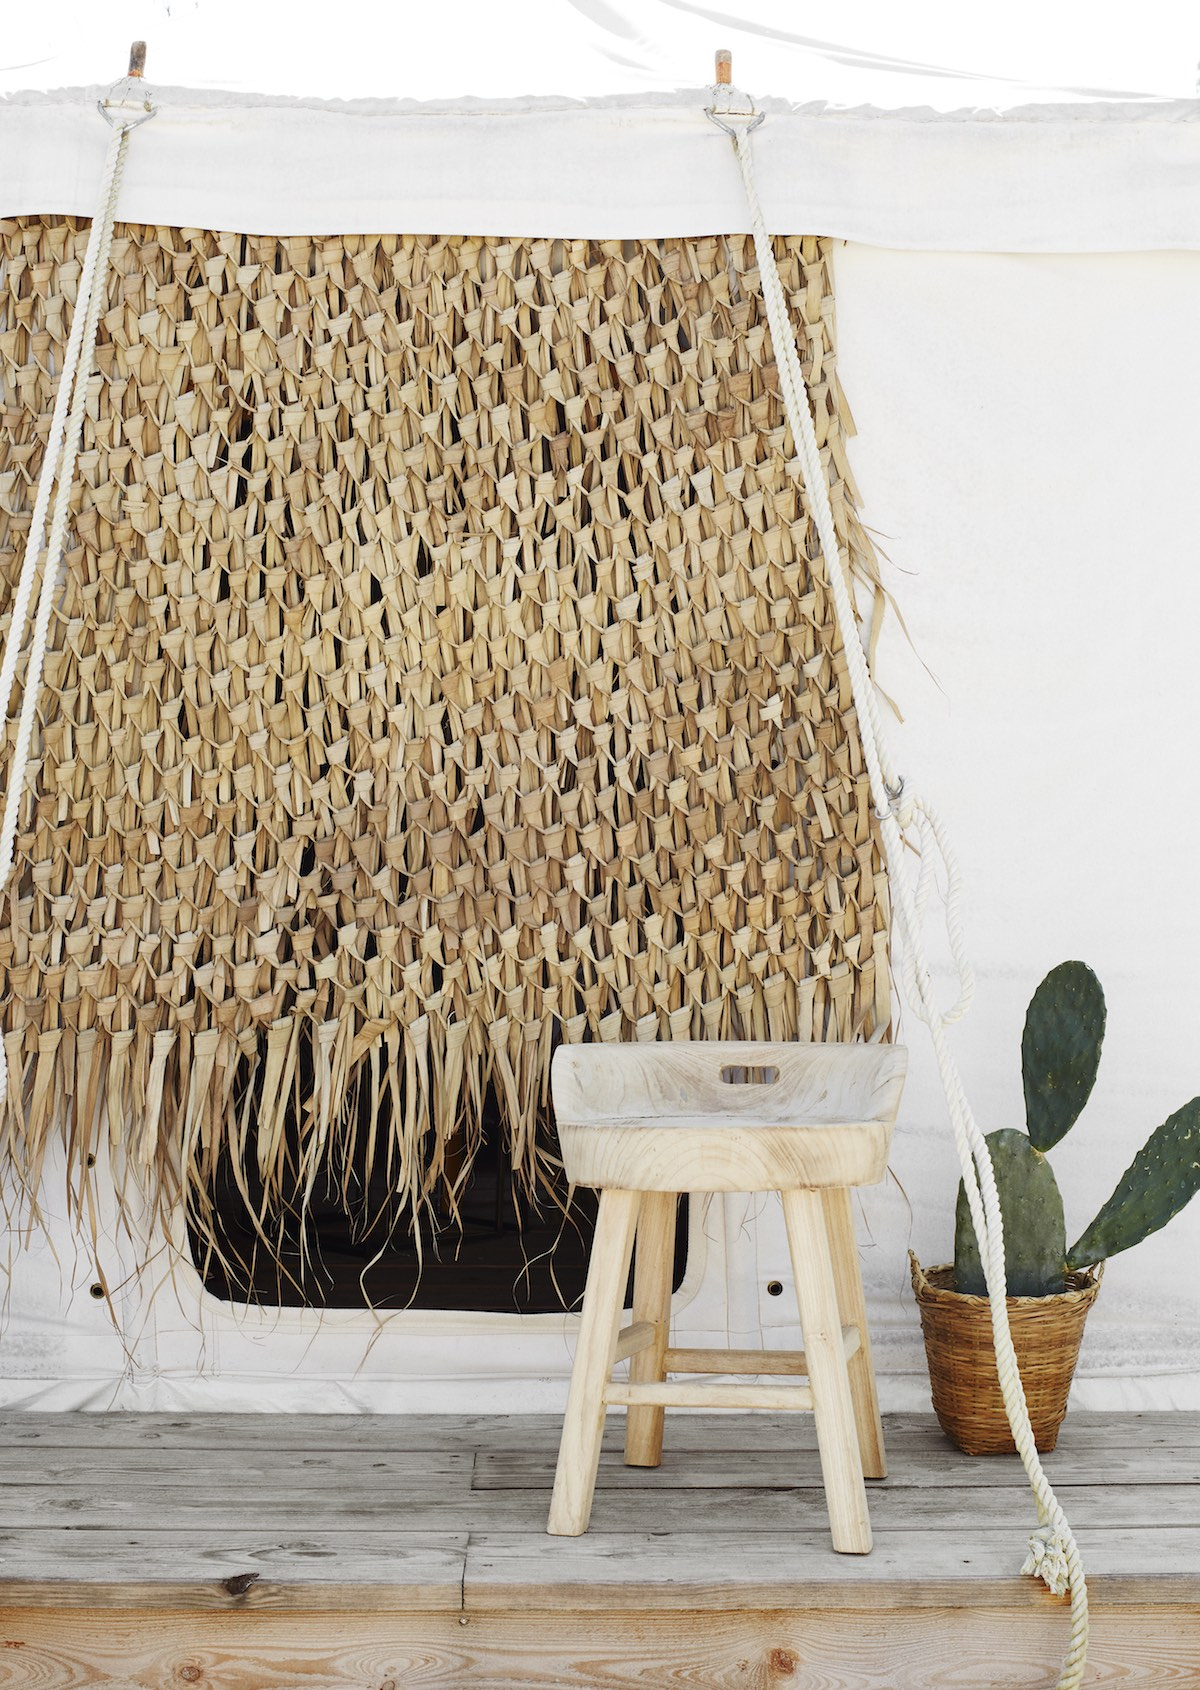 Wonderful boho vibes in the latest collection from danish homeware brand Madam Stoltz.